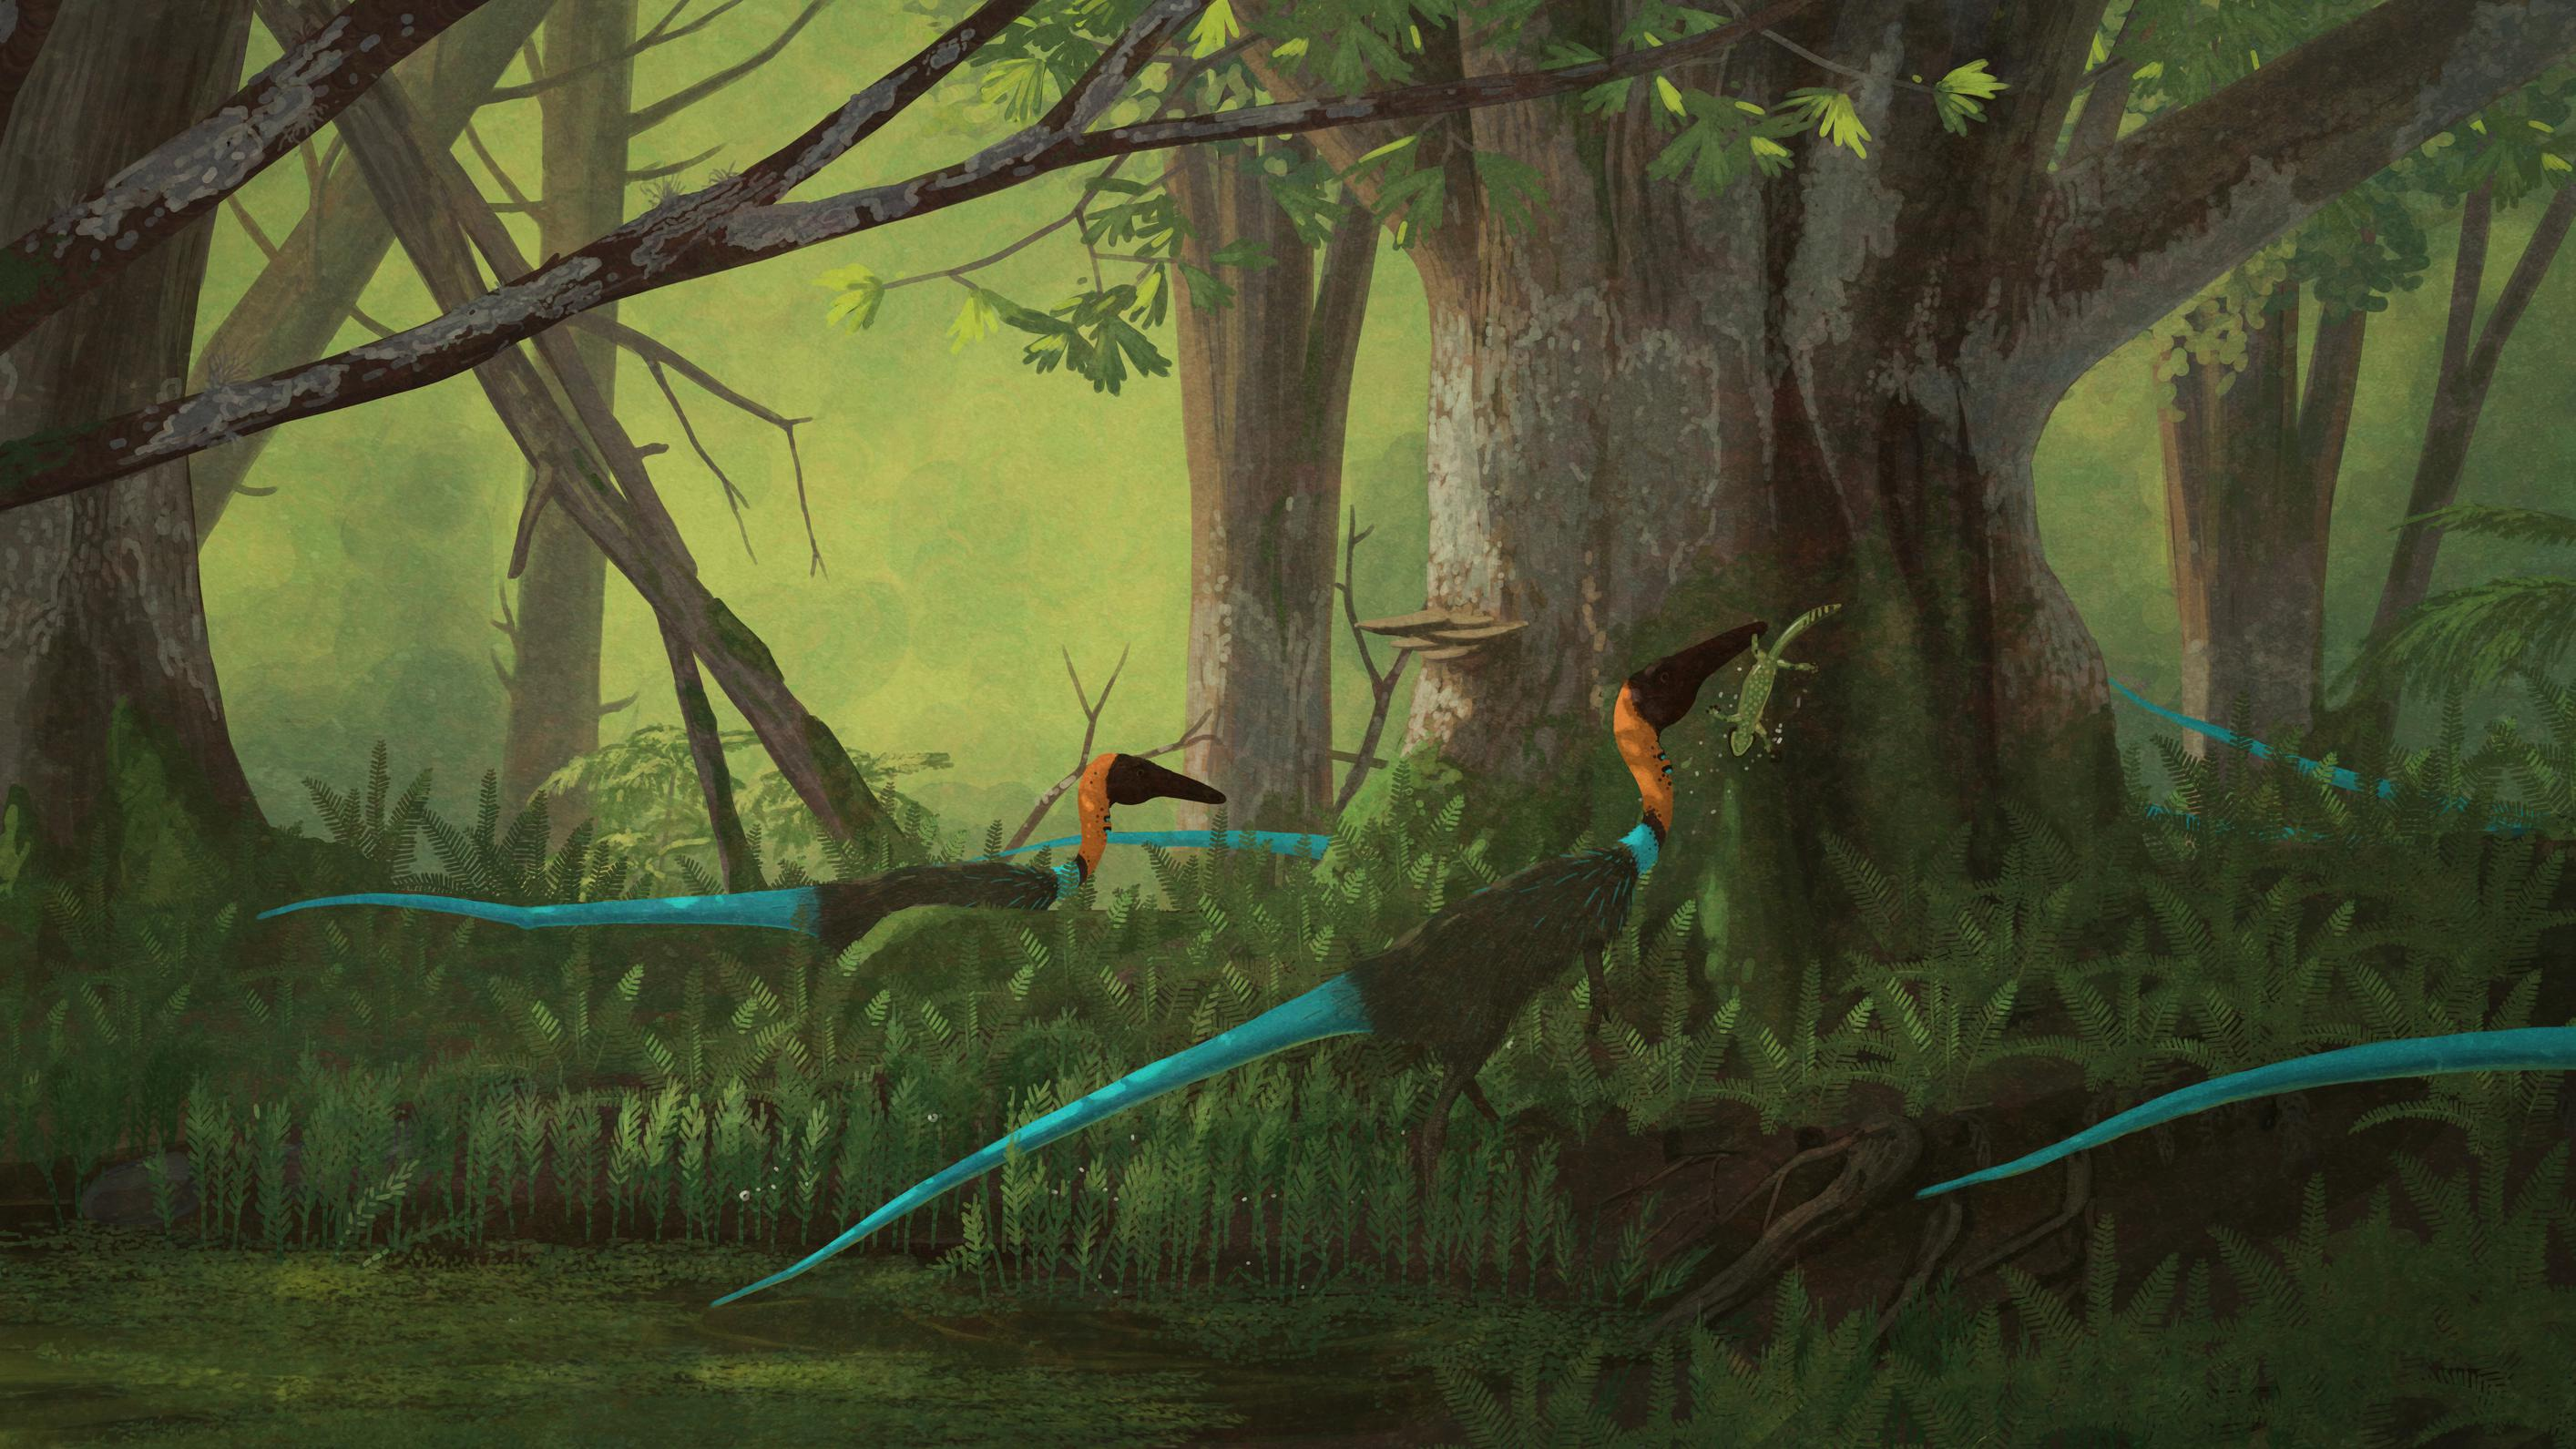 coelophysis, palaeo, painting, paleo, dinosaurs, theropods, mesozoic, triassic, feathered dinosaurs